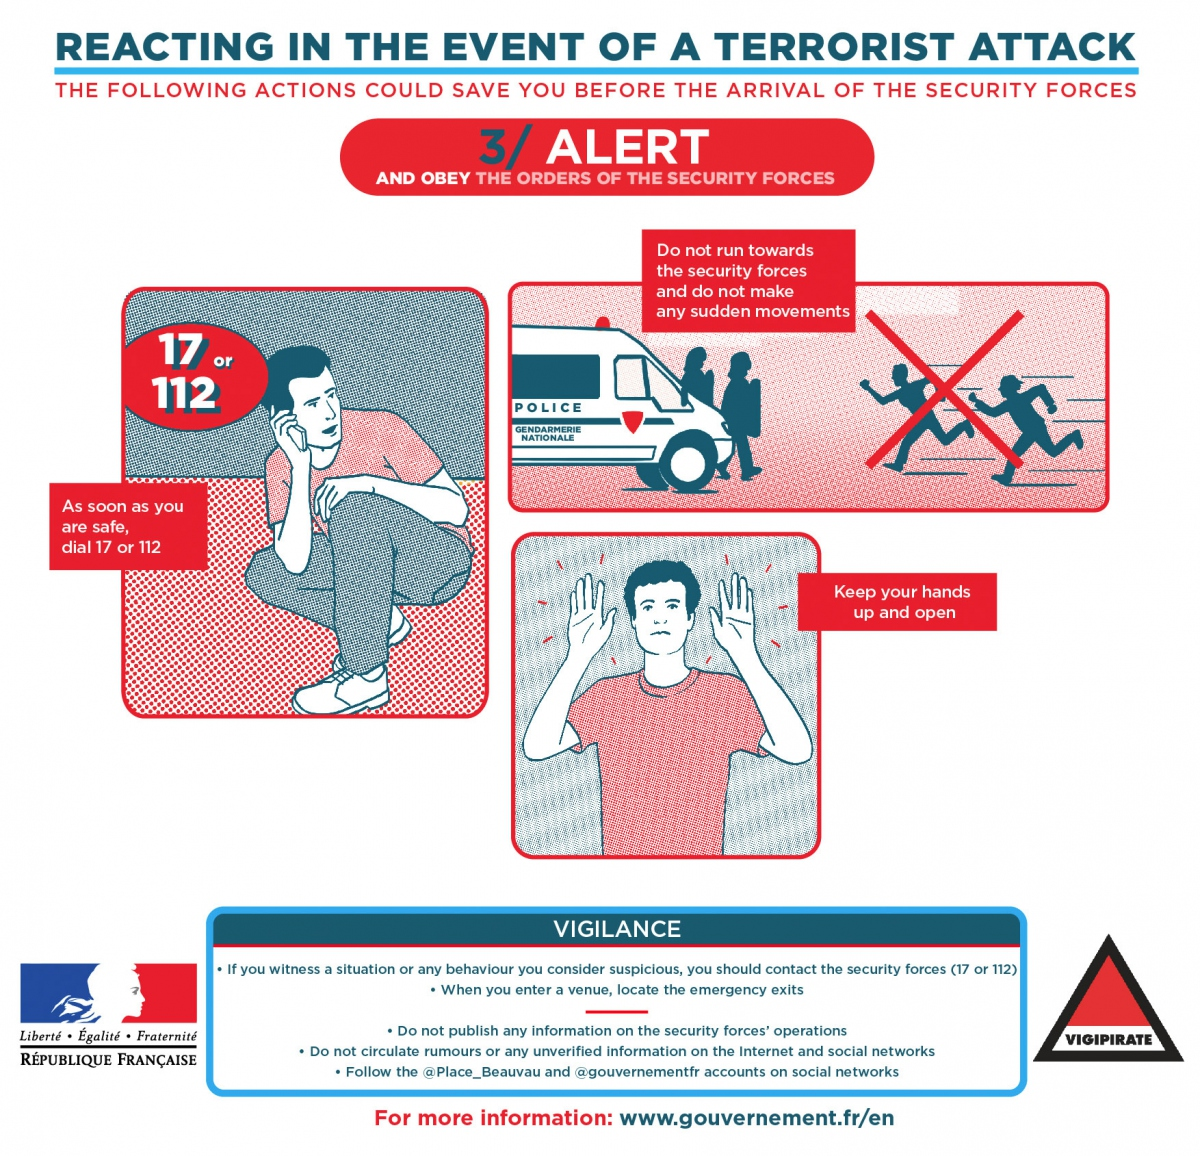 How to react in the event of a terrorist attack: alert